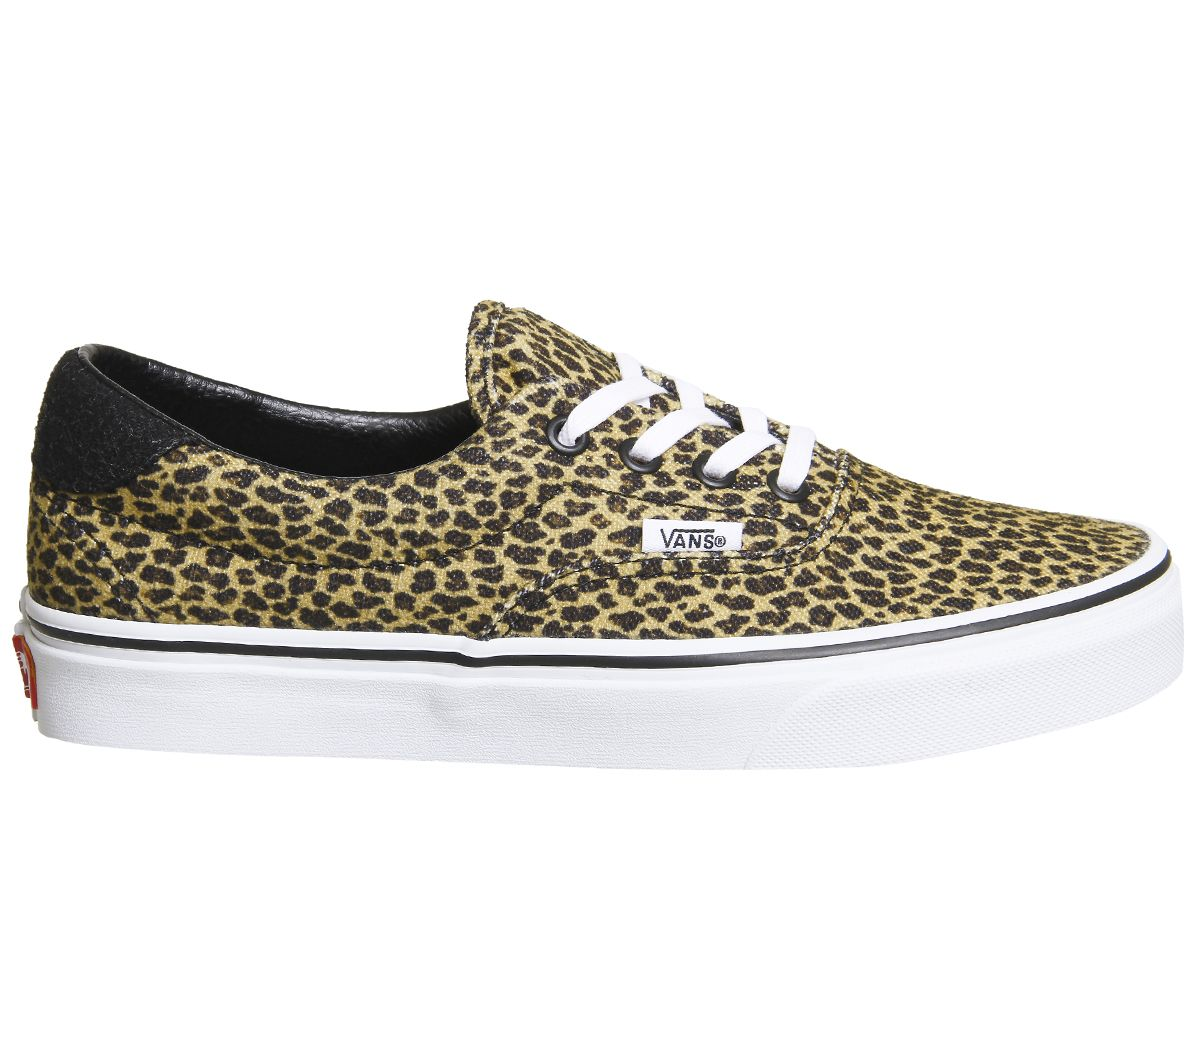 32ee199252 Vans Era 59 Trainers Mini Leopard - Hers trainers